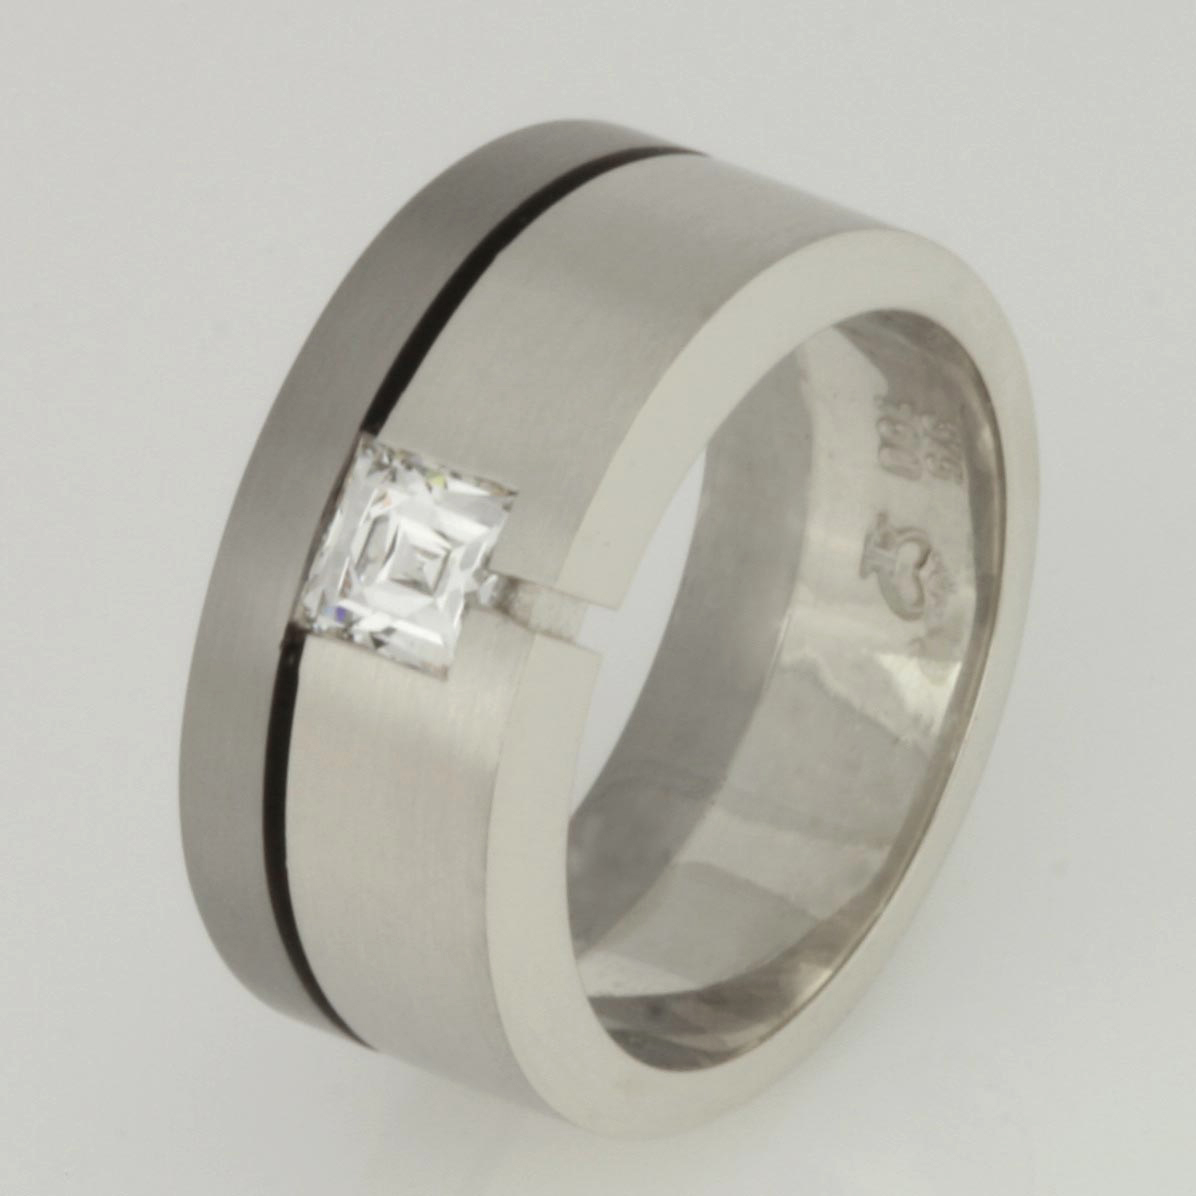 Handmade 18ct and 9ct white gold wedding ring featuring a Tycoon cut diamond